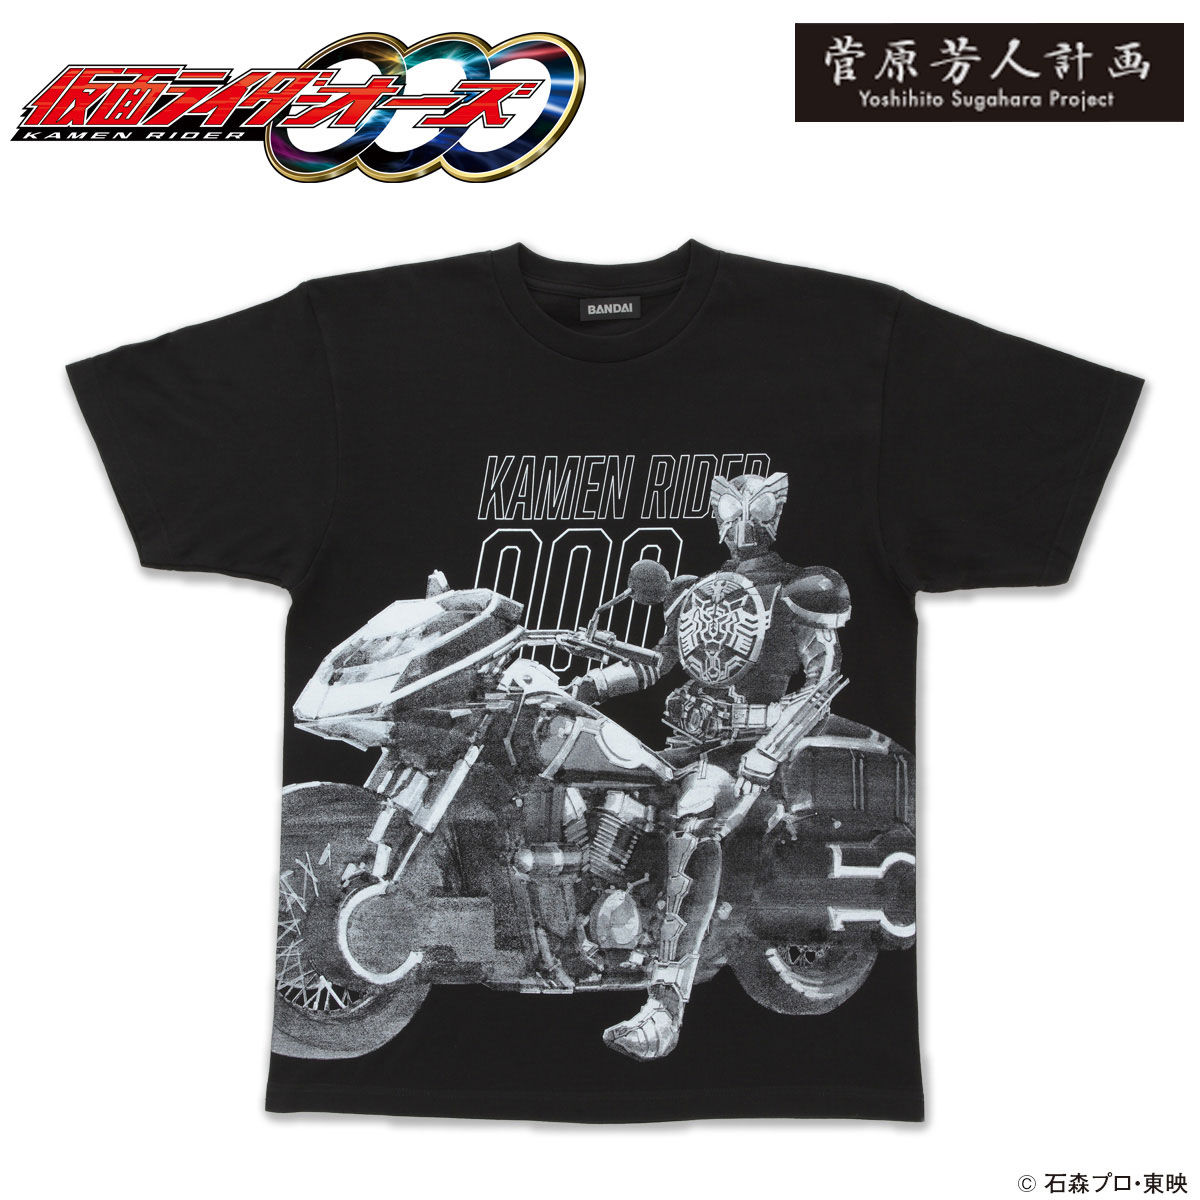 Yoshihito Sugahara Project Kamen Rider OOO And Ride Vendor T-Shirt